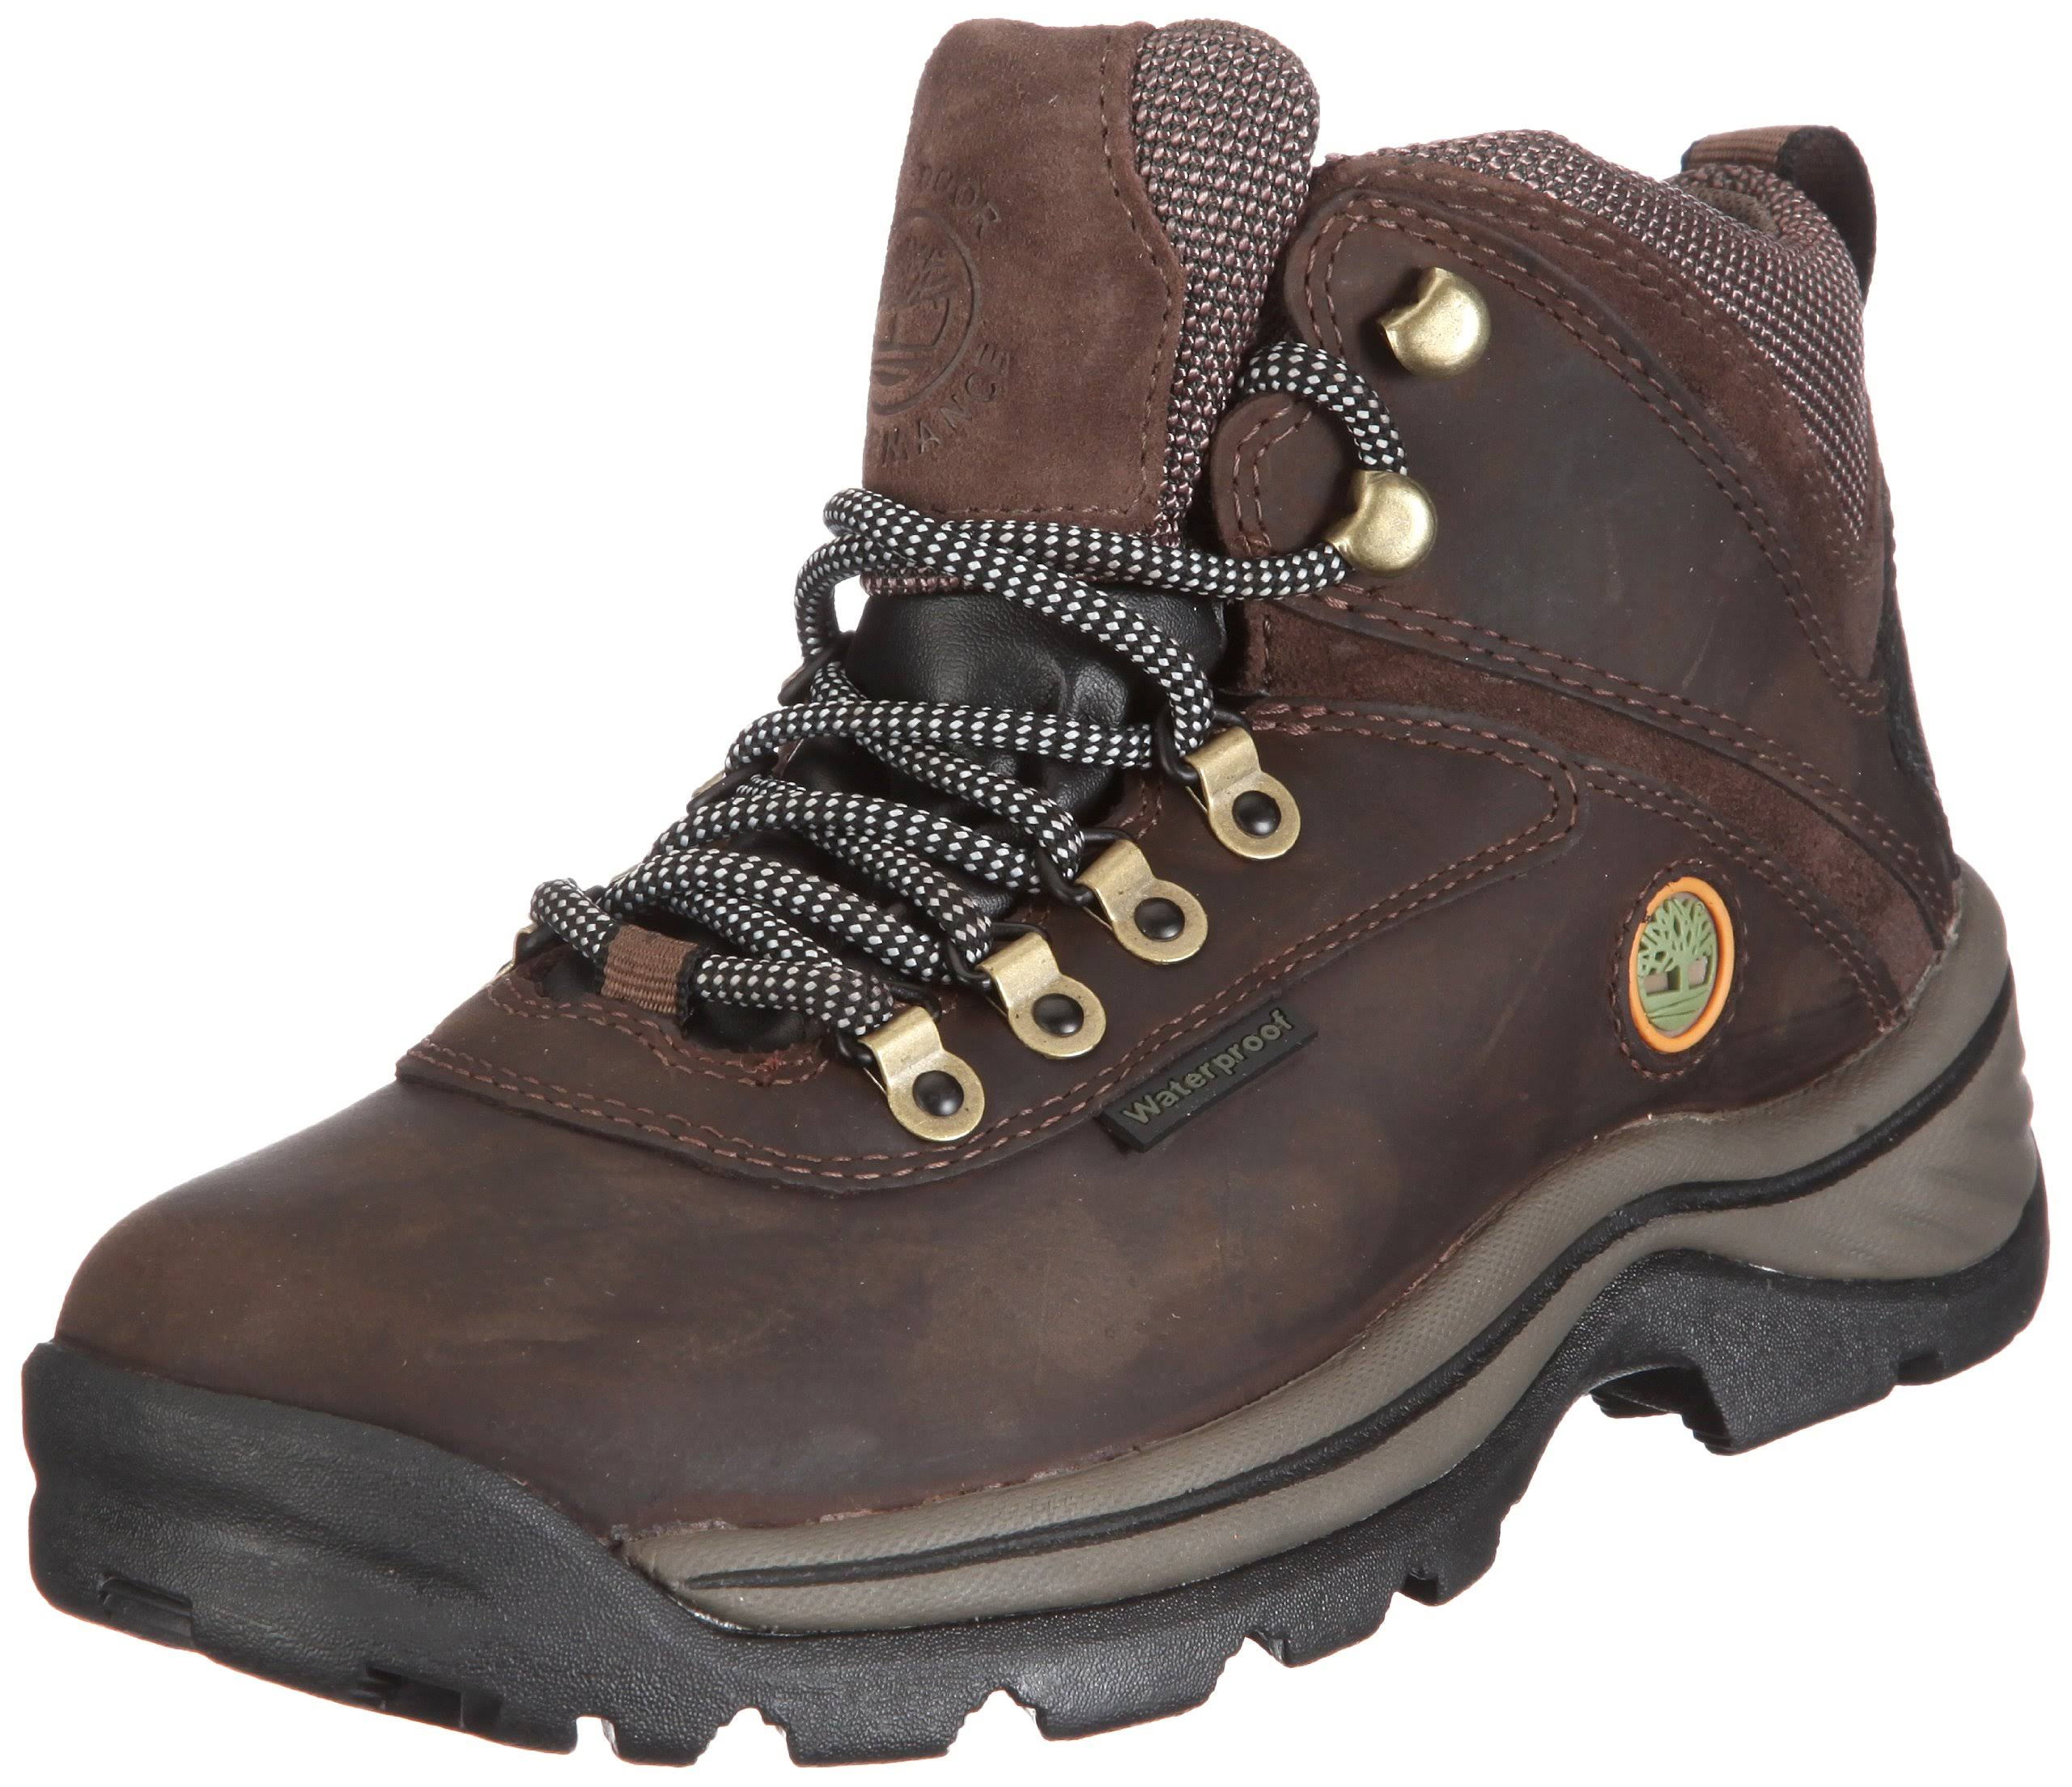 9 Waterproof Para Mujer Brown Mid Timberland White Ledge Tamaño 5 w8Rq8pPx